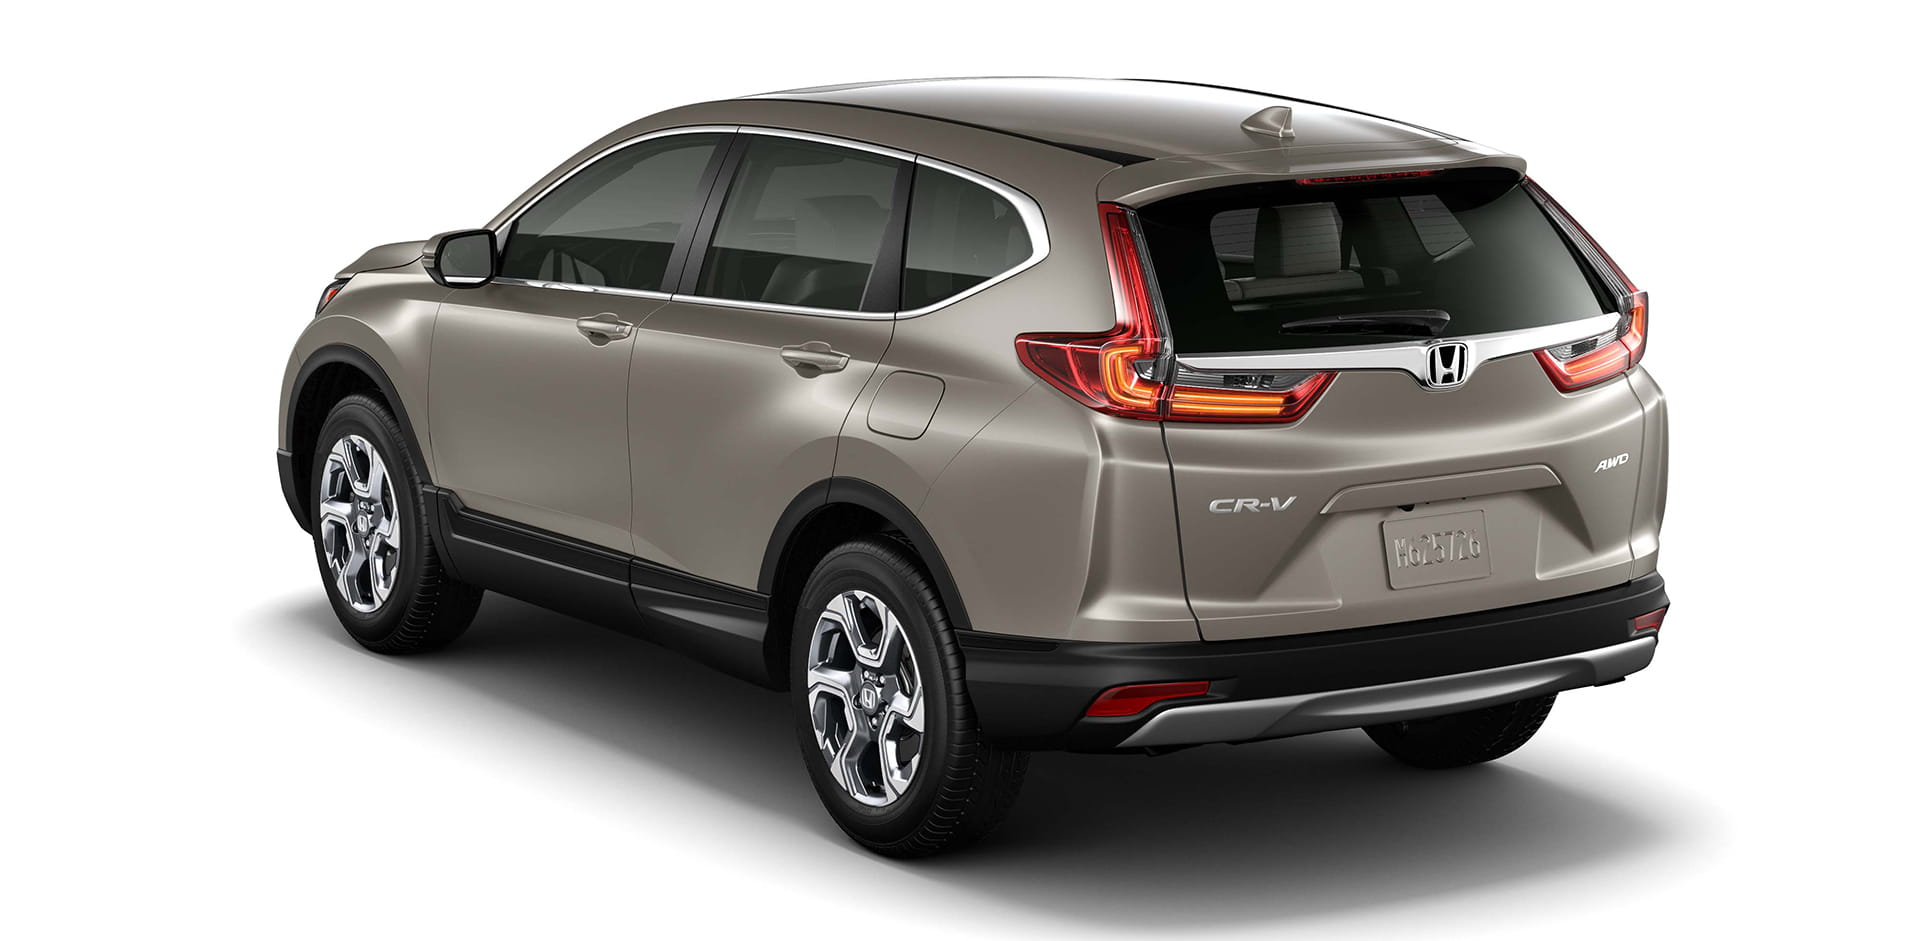 2017 honda cr v test drive honda crv with honda middle east. Black Bedroom Furniture Sets. Home Design Ideas